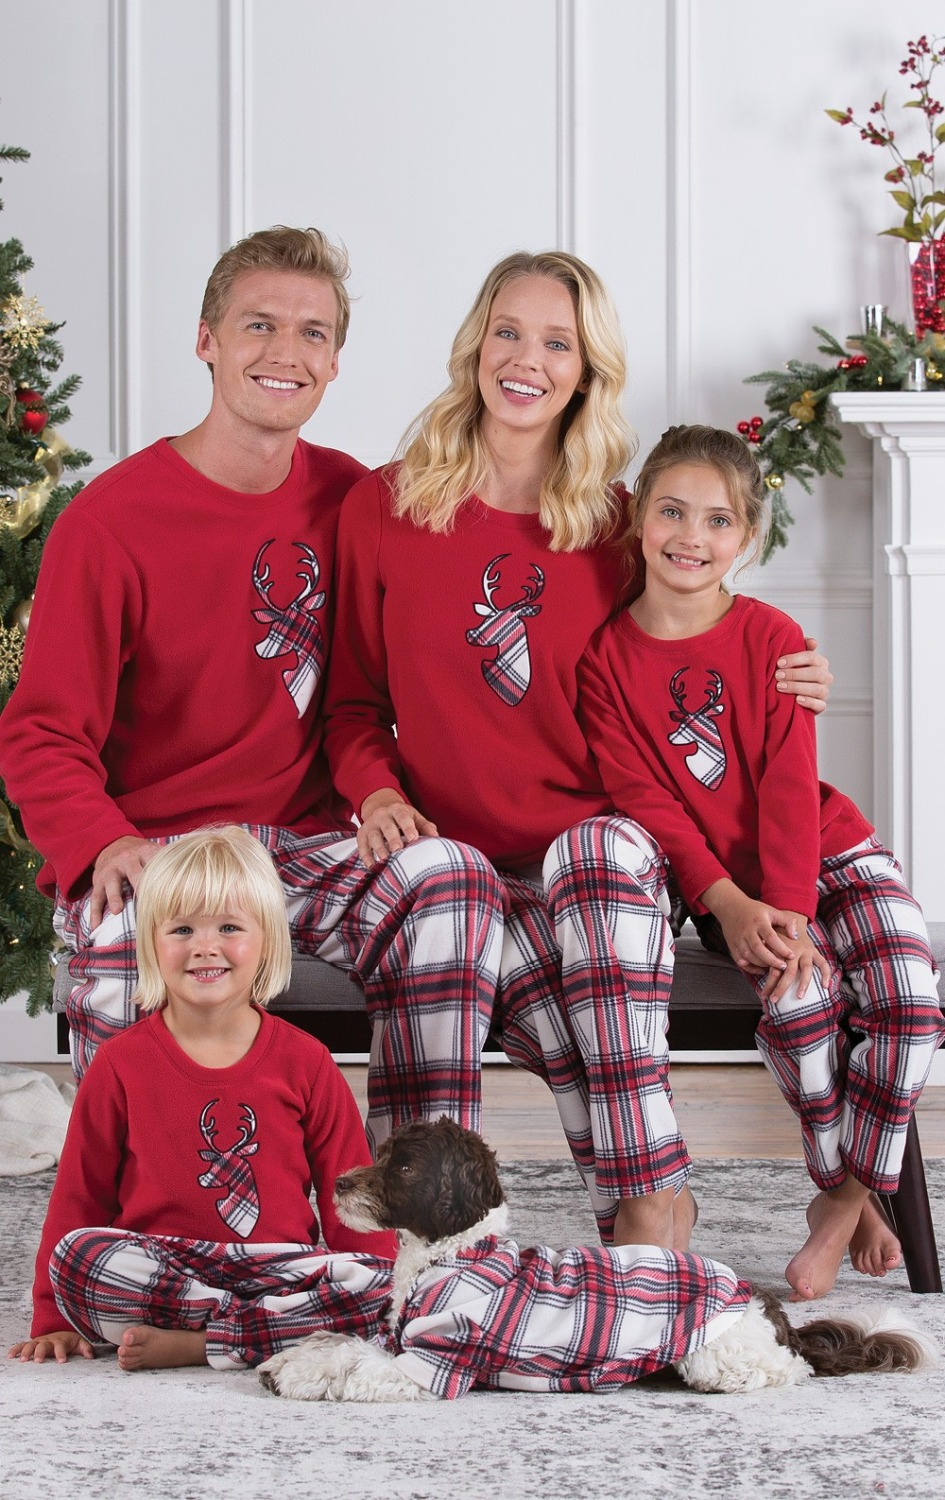 Matching Family Christmas Outfits.Matching Family Christmas Outfits Pajamas Set Warm Adult Kid Girl Tshirt Tops Sleepwear New Year Clothes Father Mother Daughter